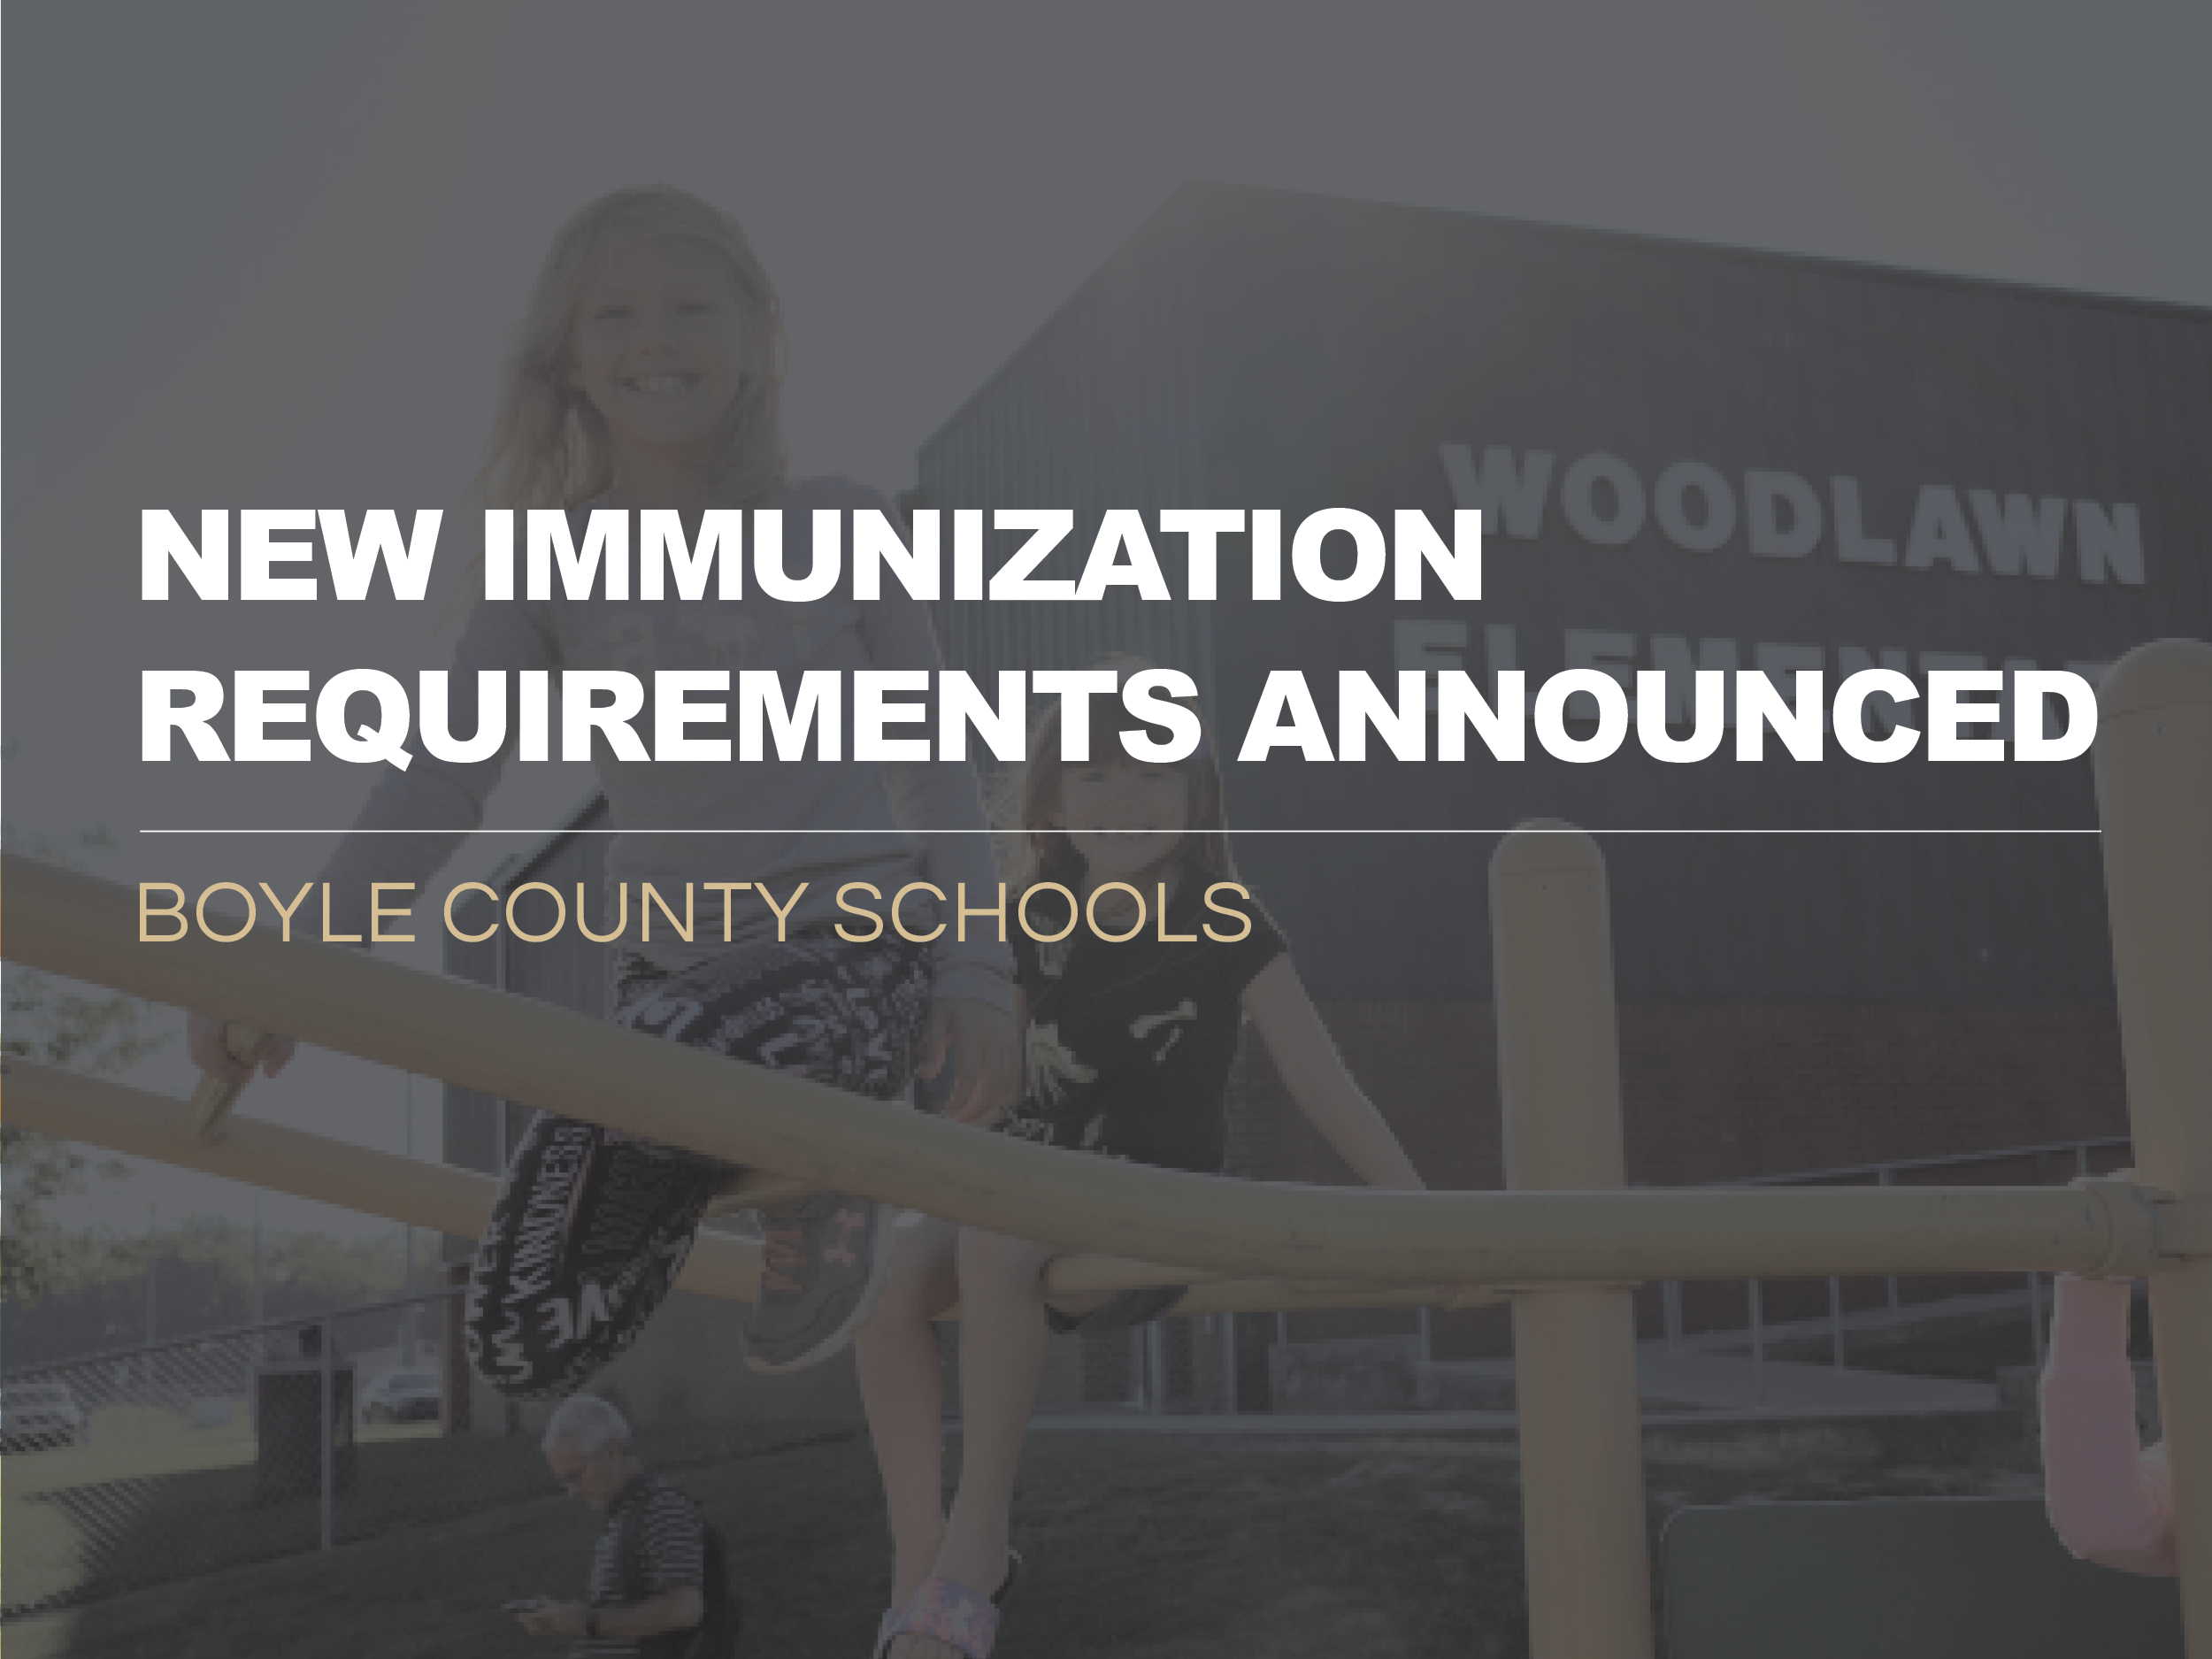 New Immunization Requirements Released